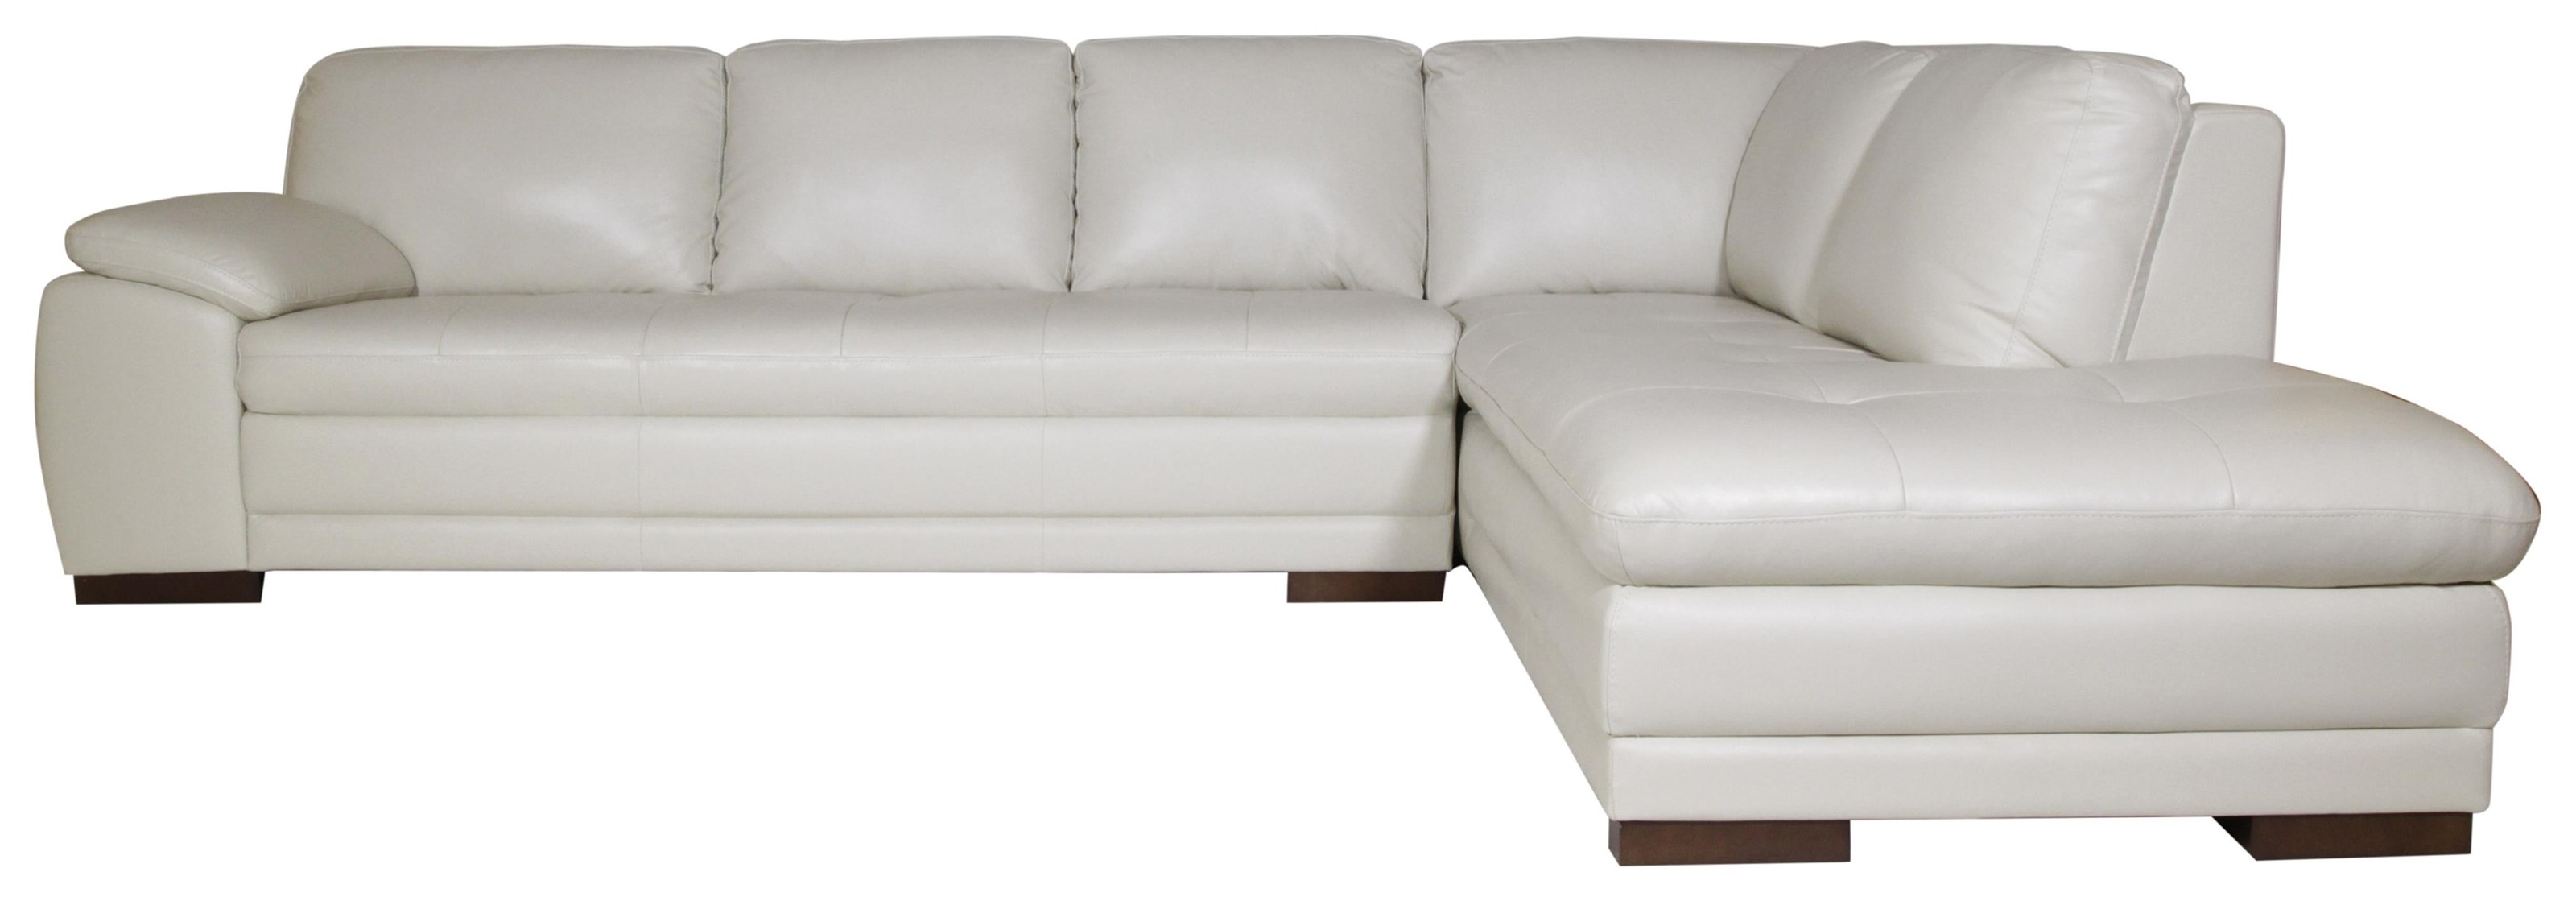 Arrow Sectional by Violino at HomeWorld Furniture